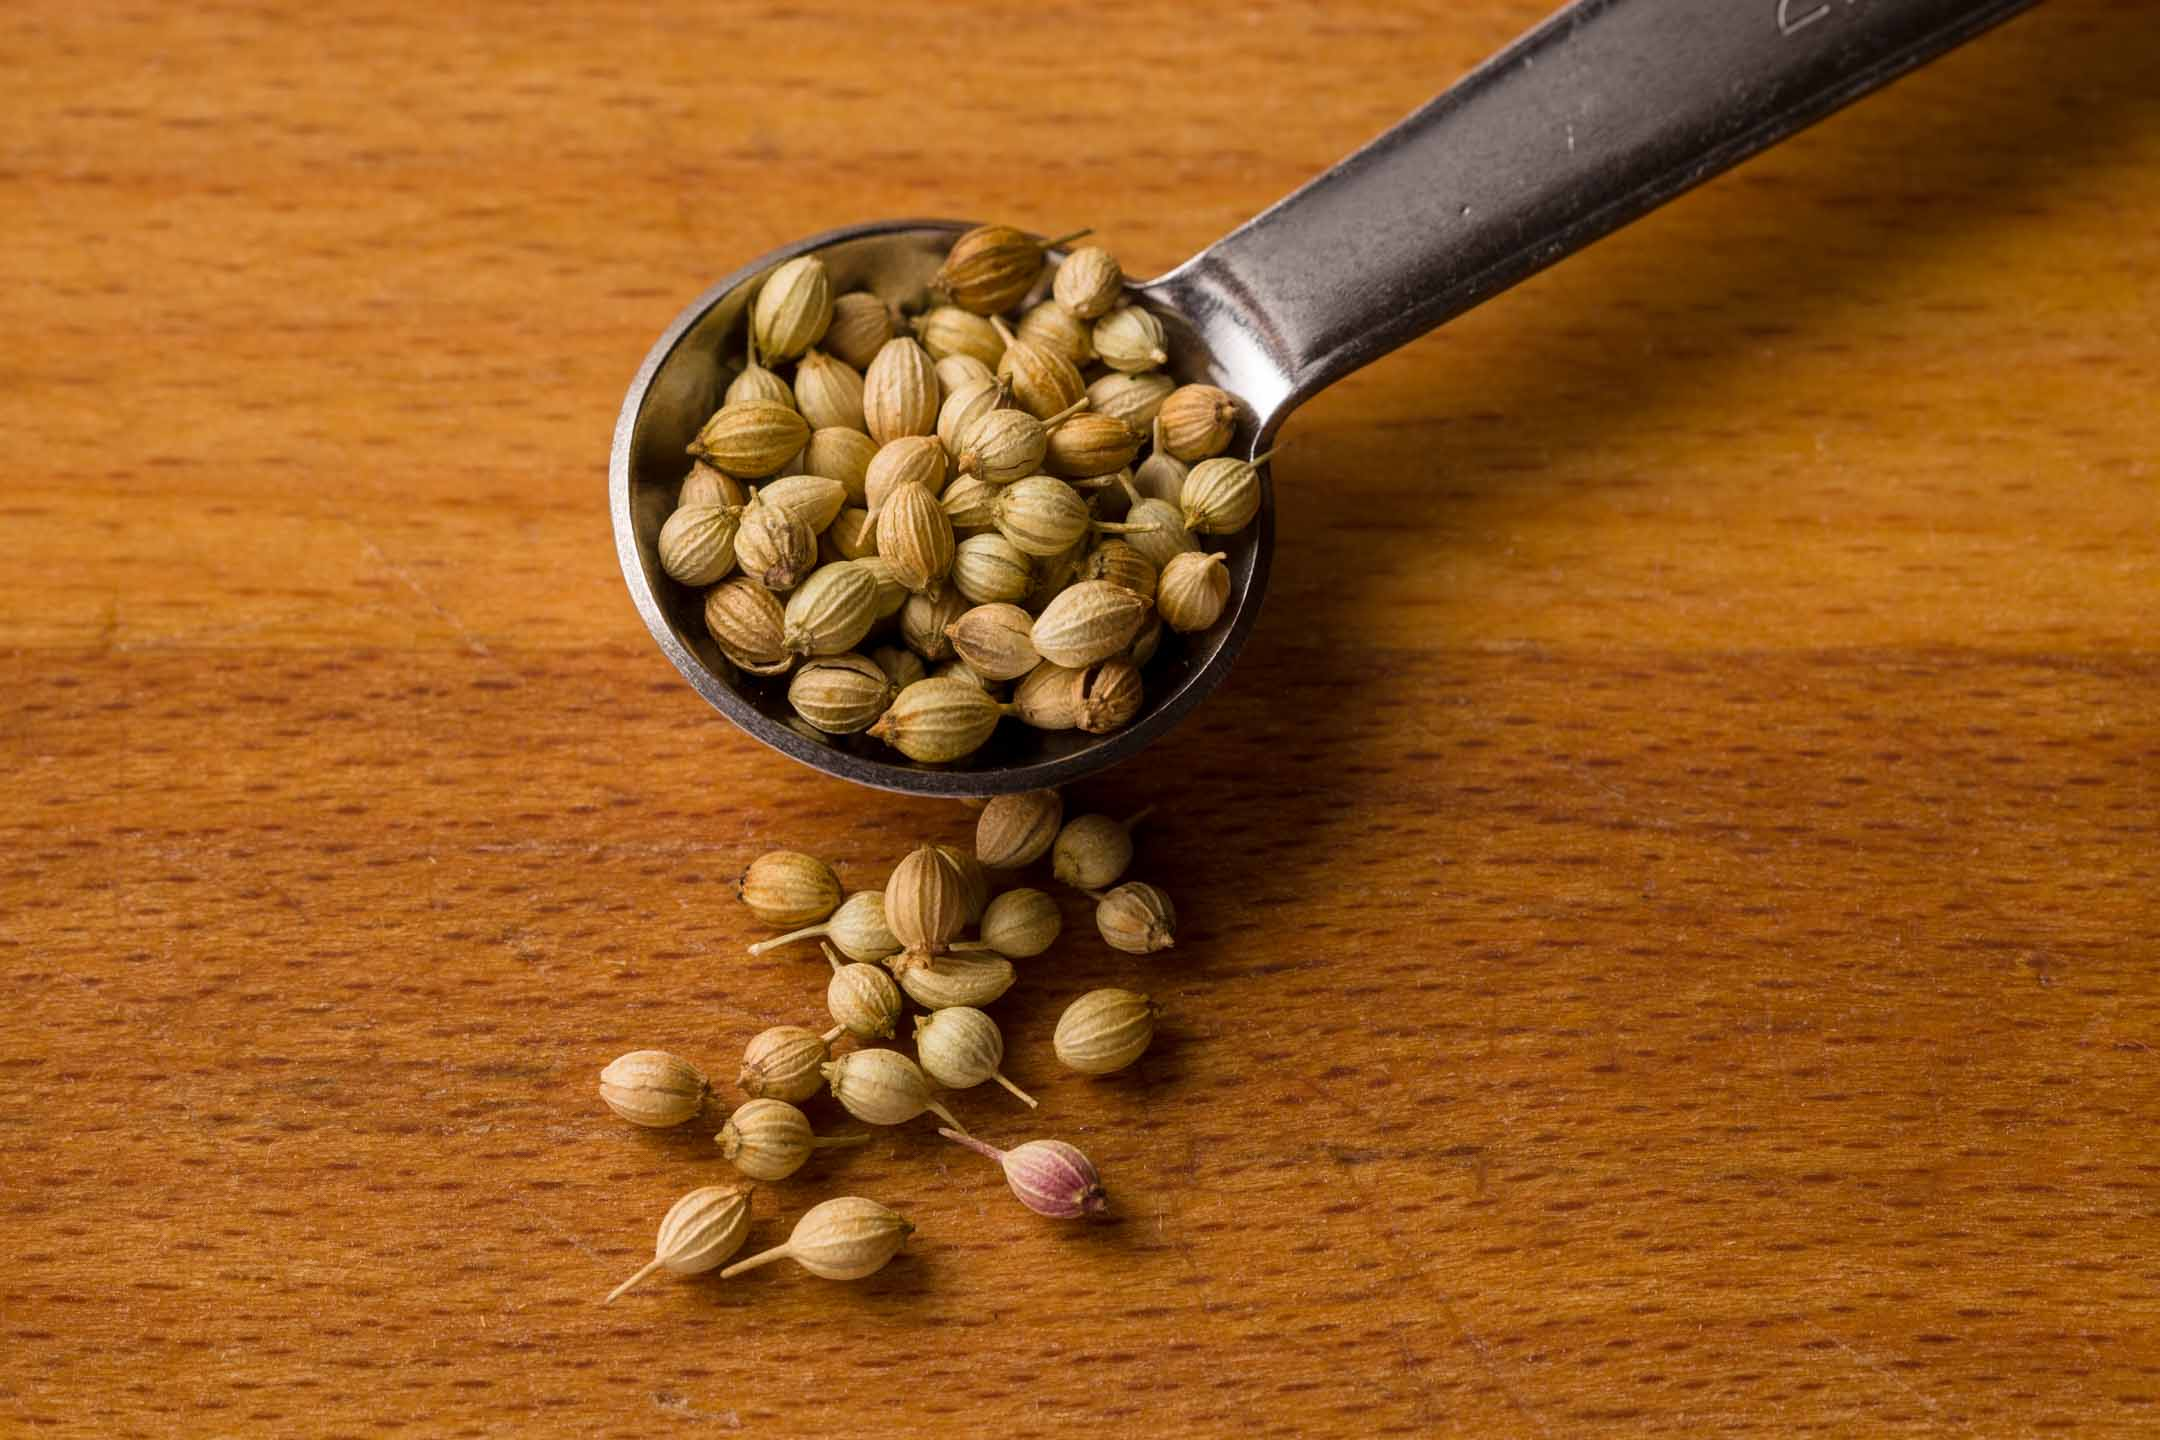 Adding coriander seed will make things souper interesting